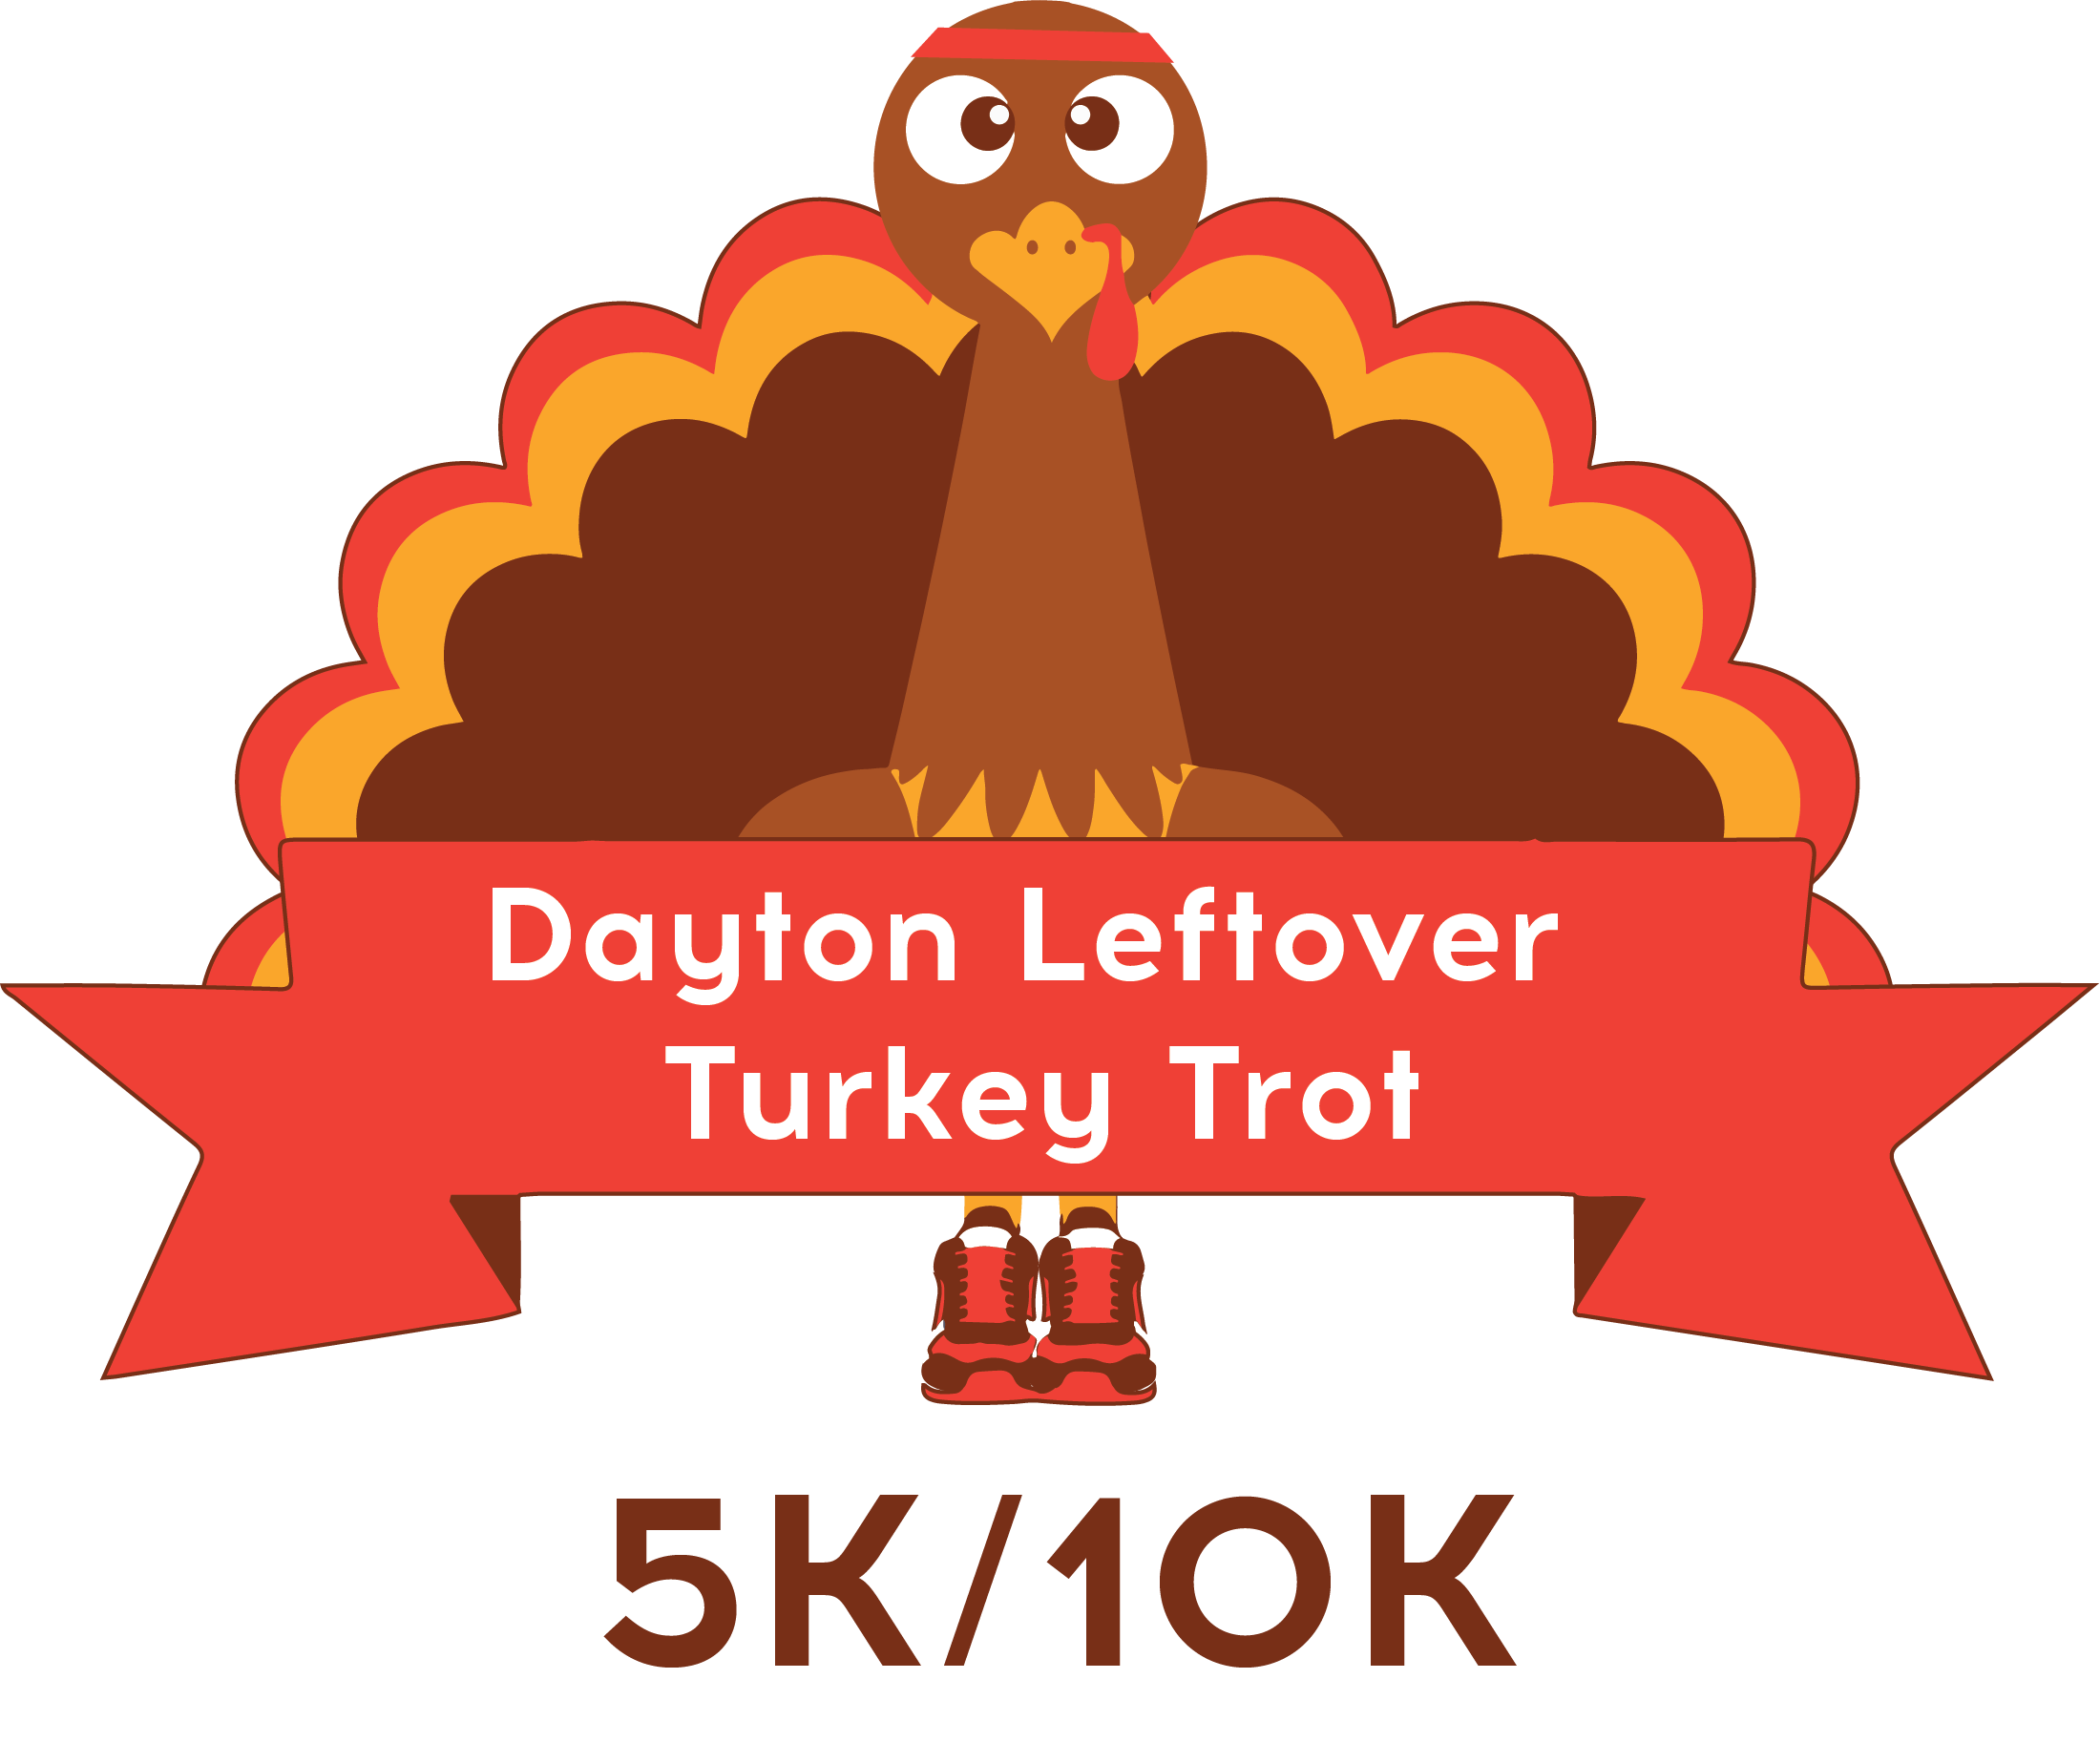 Dayton Leftover Turkey Trot